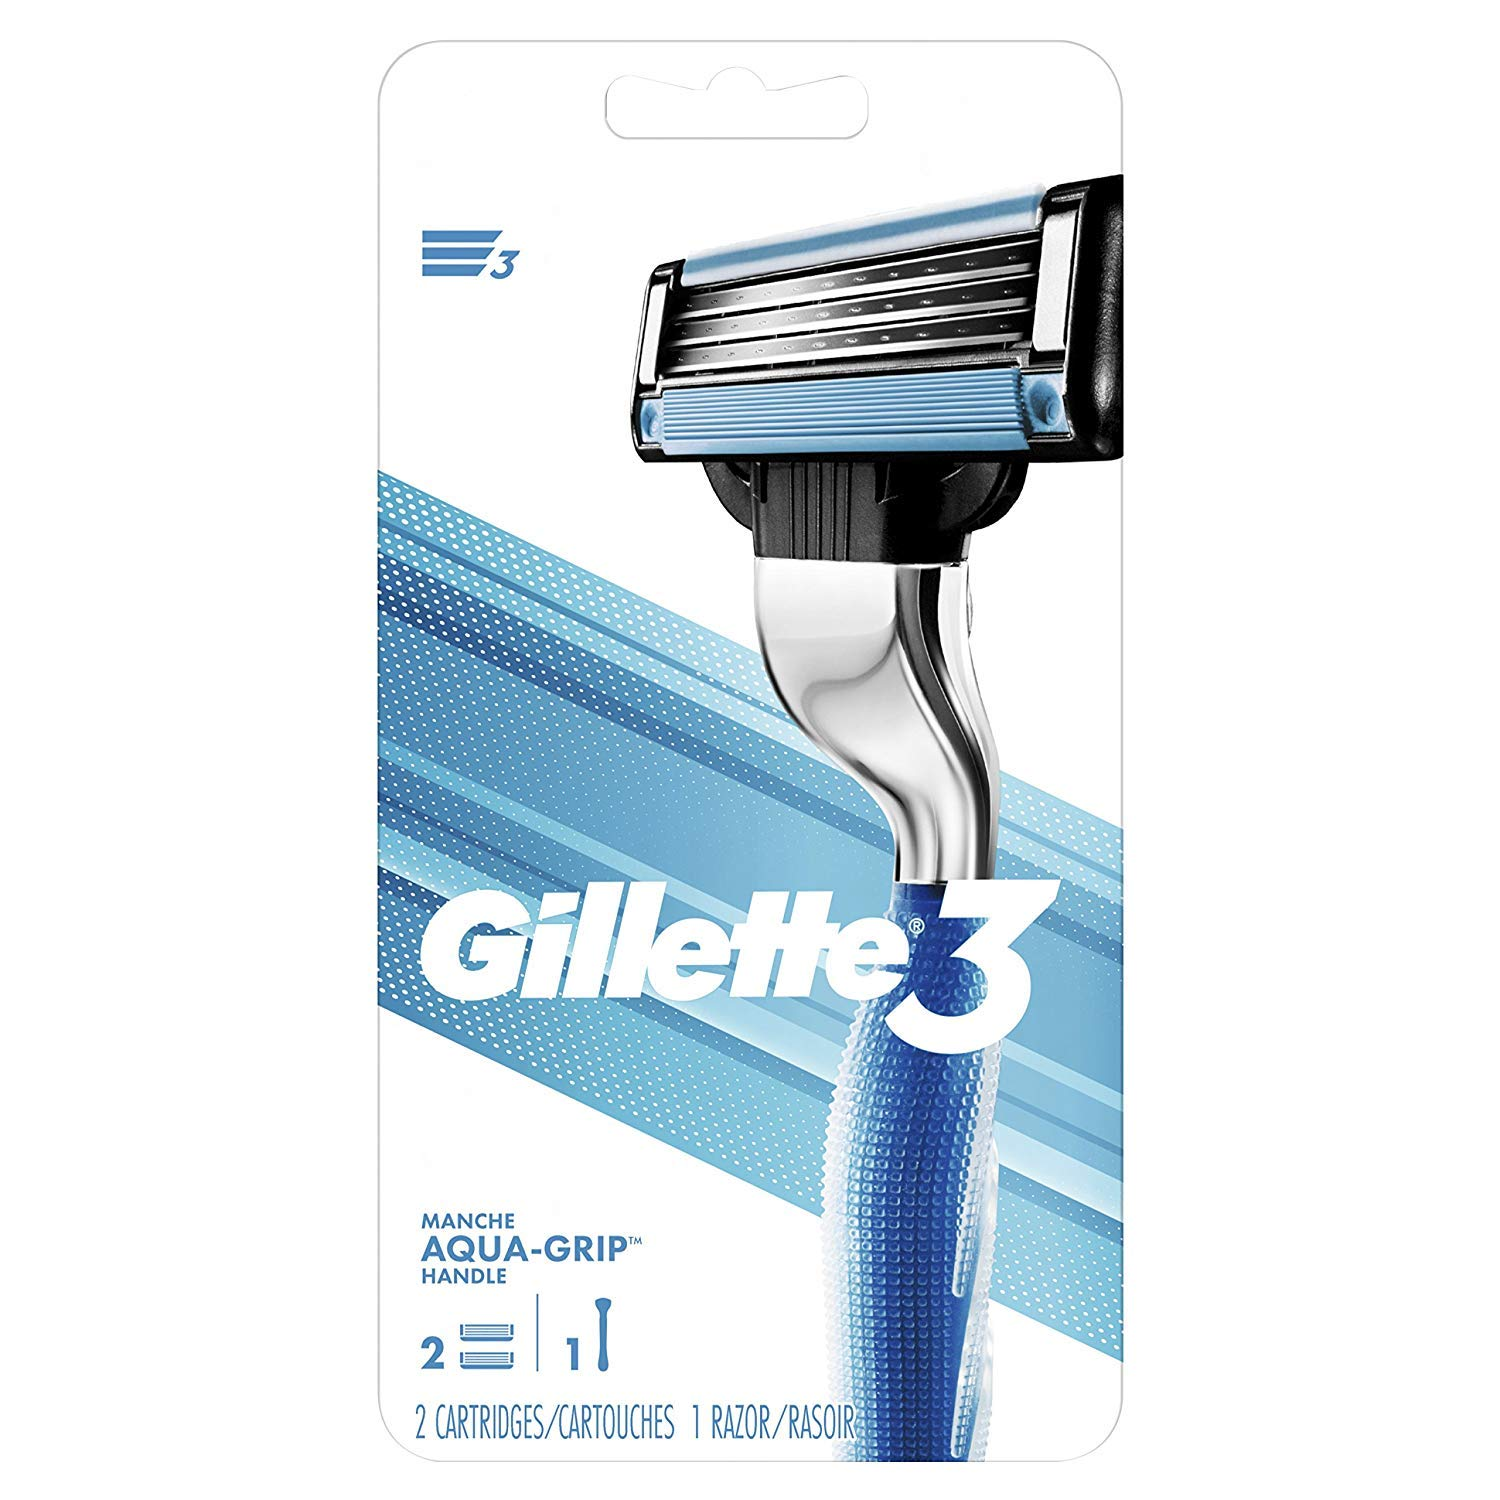 Gillette3 Men's Razor Handle by Gillette + 2 Cartridges